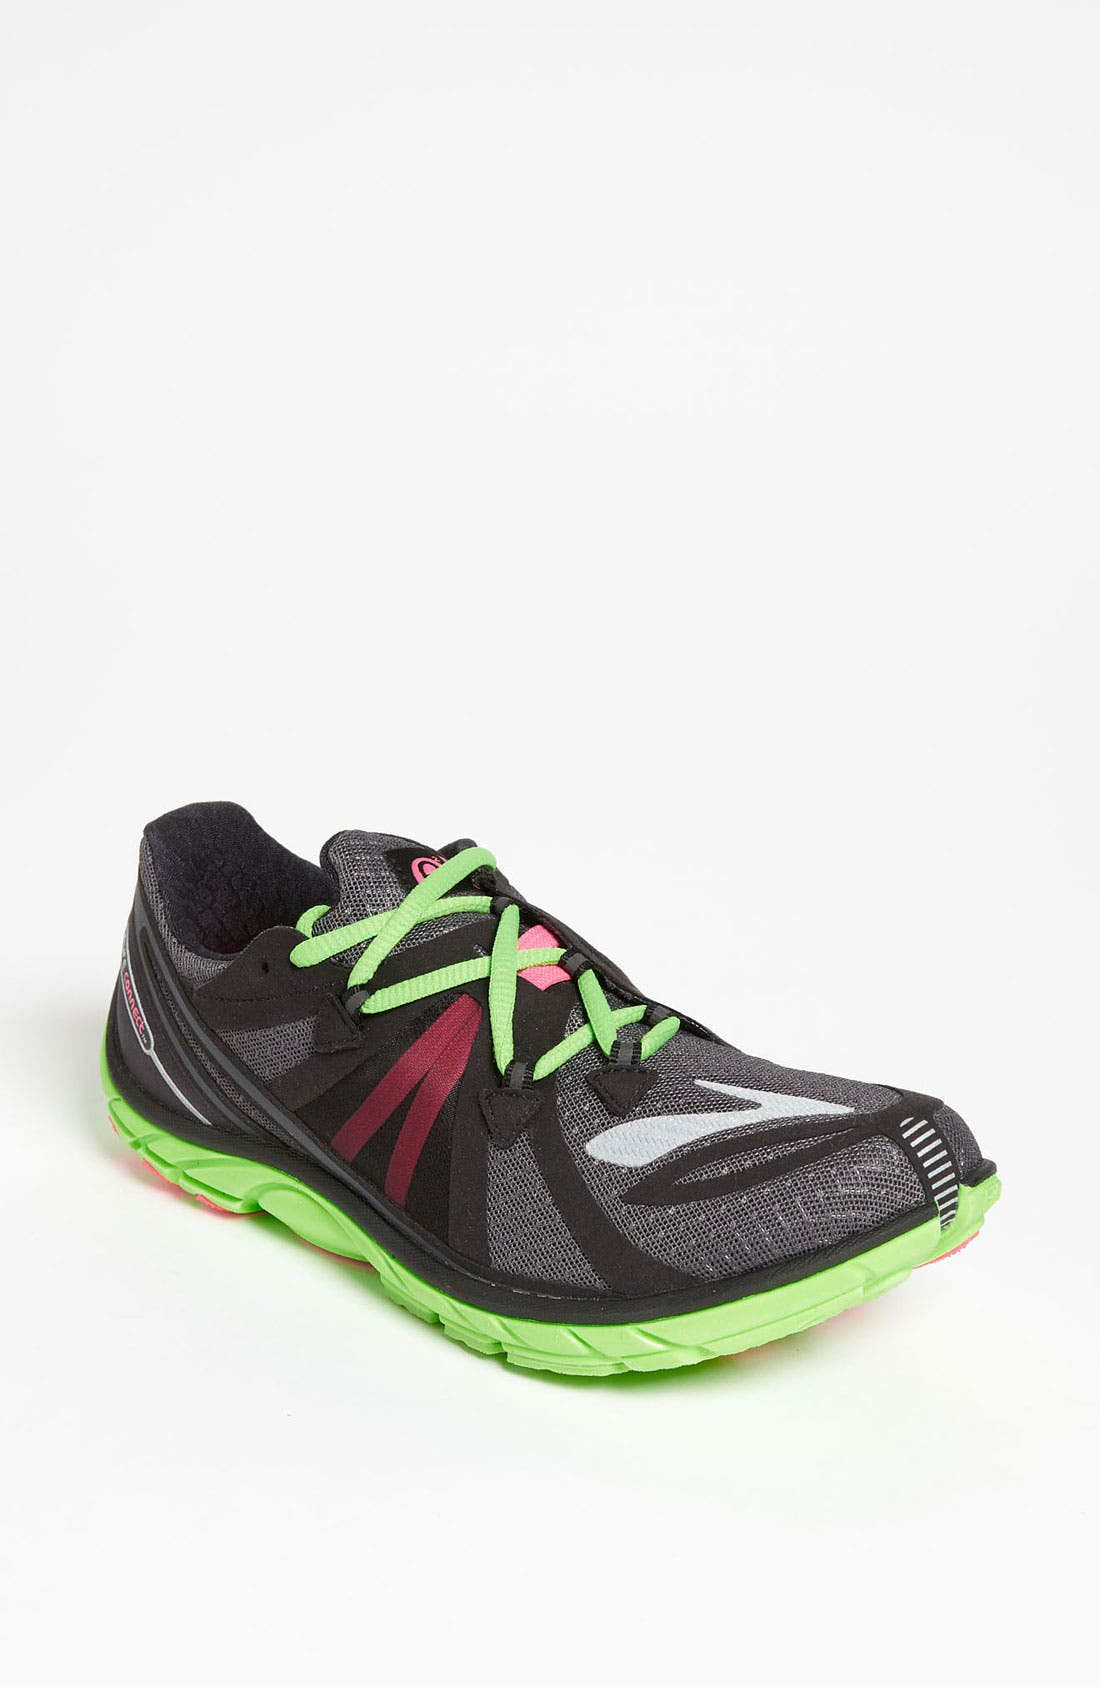 Alternate Image 1 Selected - Brooks 'PureConnect 2' Running Shoe (Women)(Regular Retail Price: $89.95)